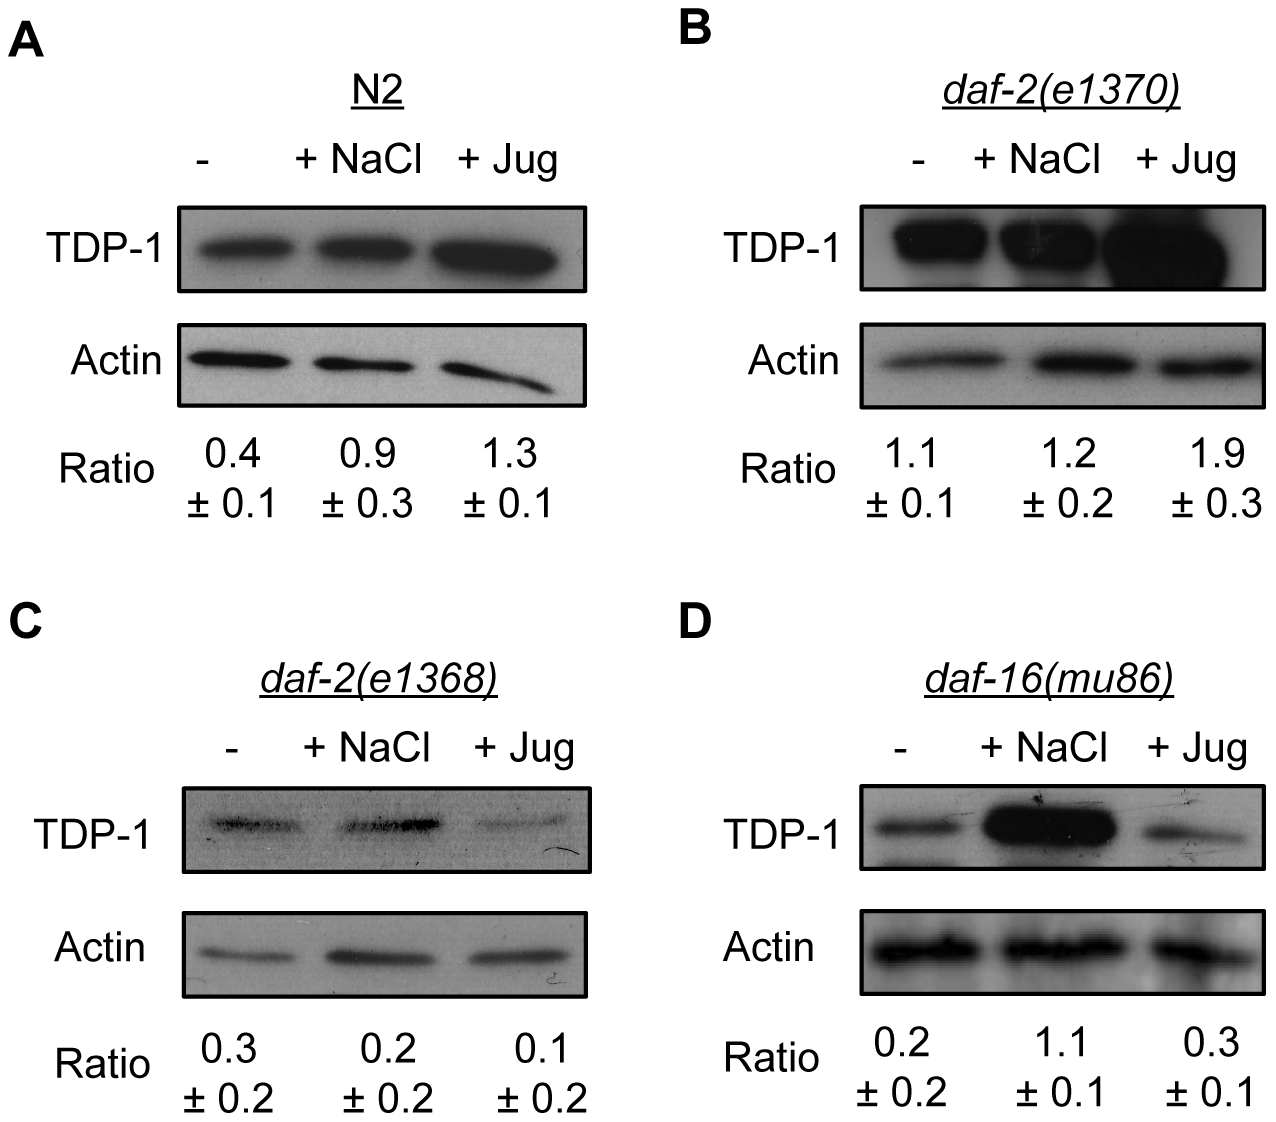 Endogenous TDP-1 protein levels influenced by stress and Insulin/IGF signaling.